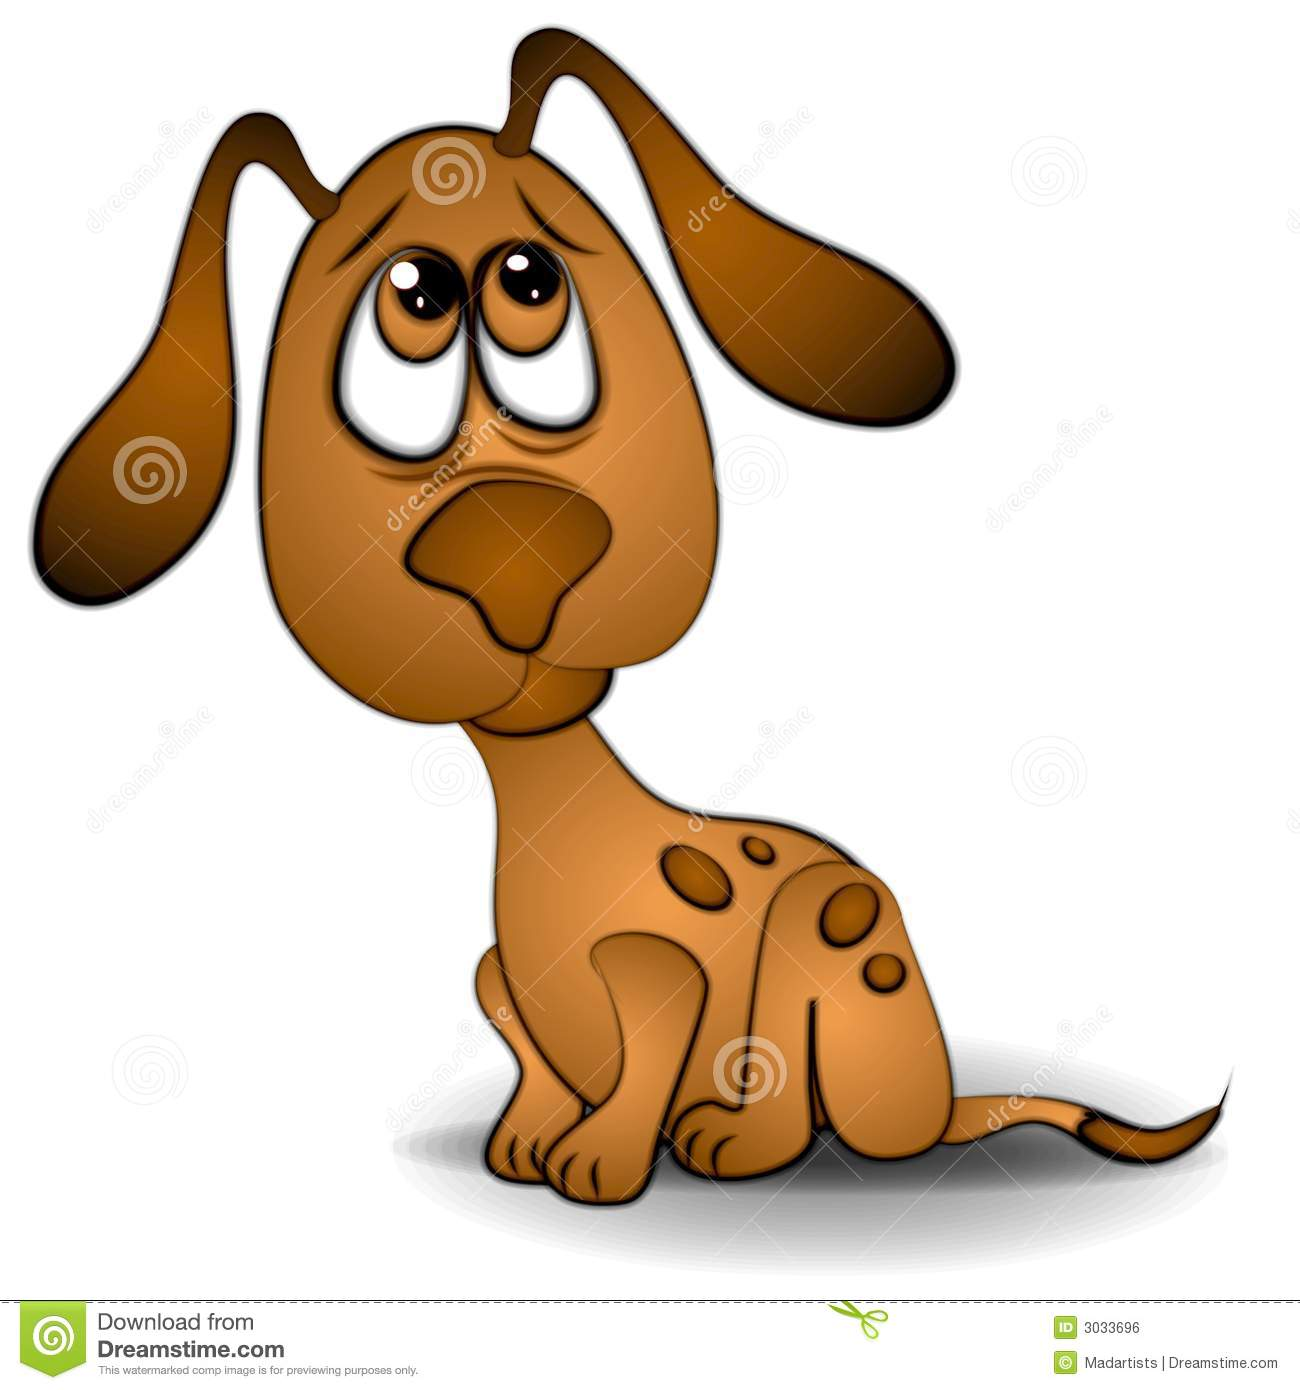 Scary small dog clipart picture black and white download Dog scared clipart - ClipartFest picture black and white download